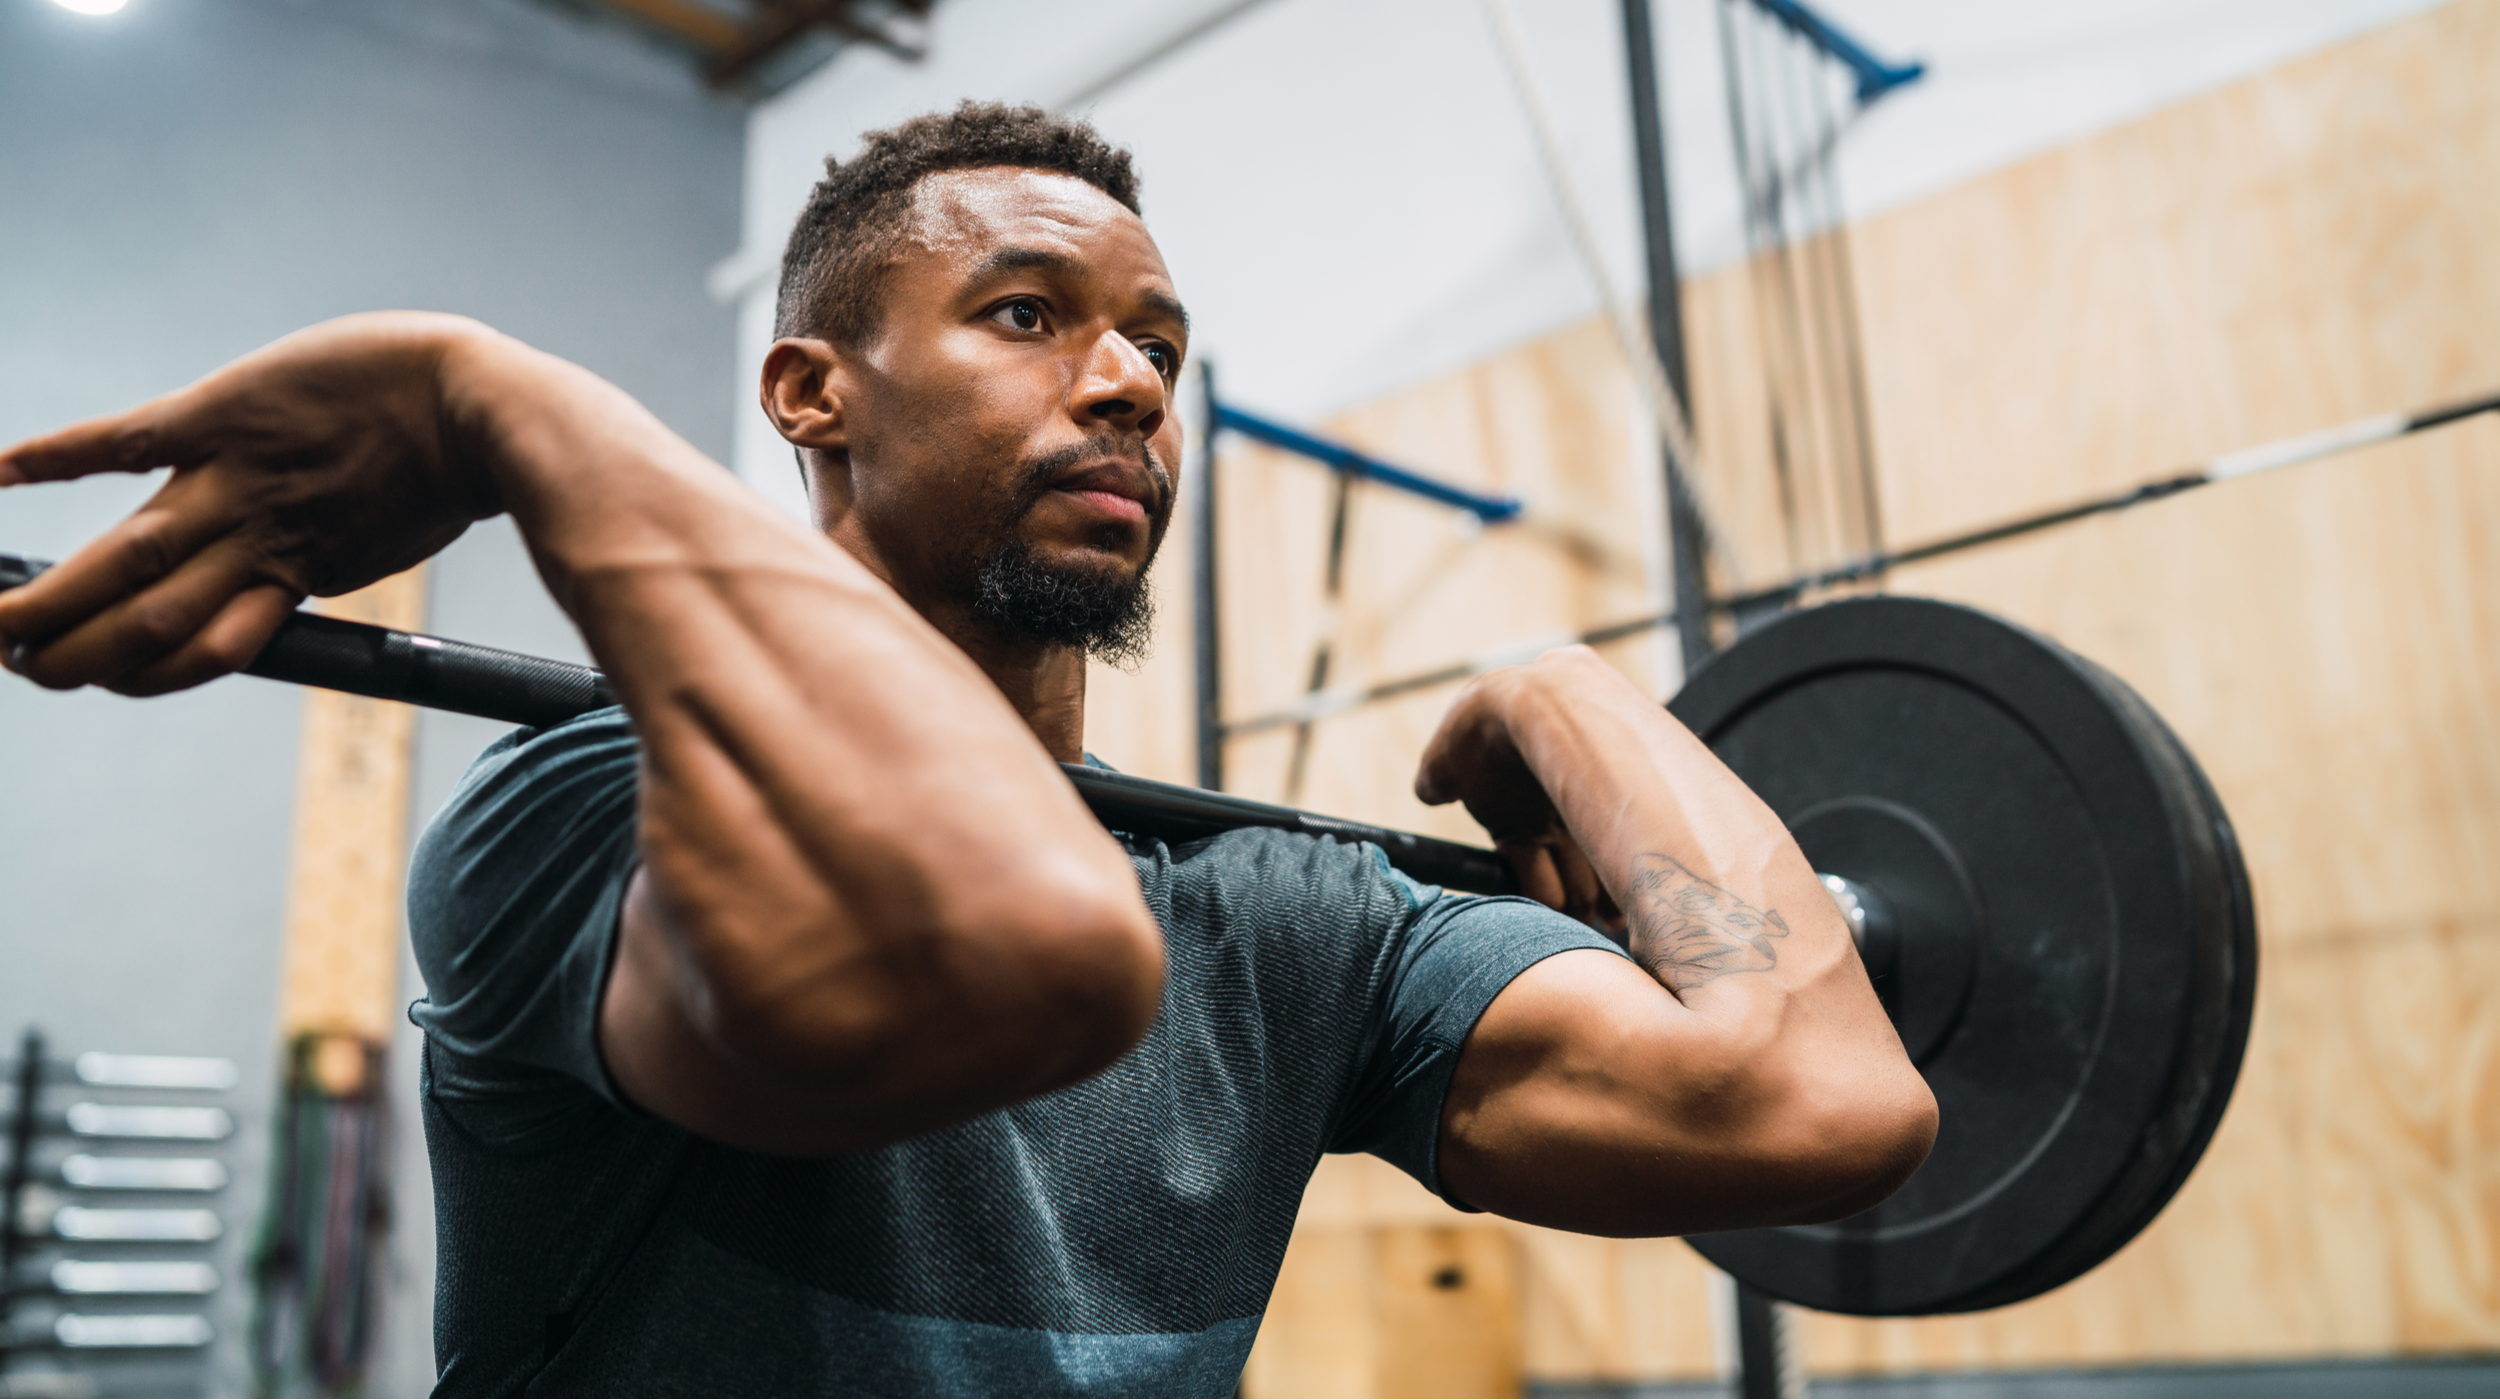 Why is Lifting Weights Better than Doing Cardio?